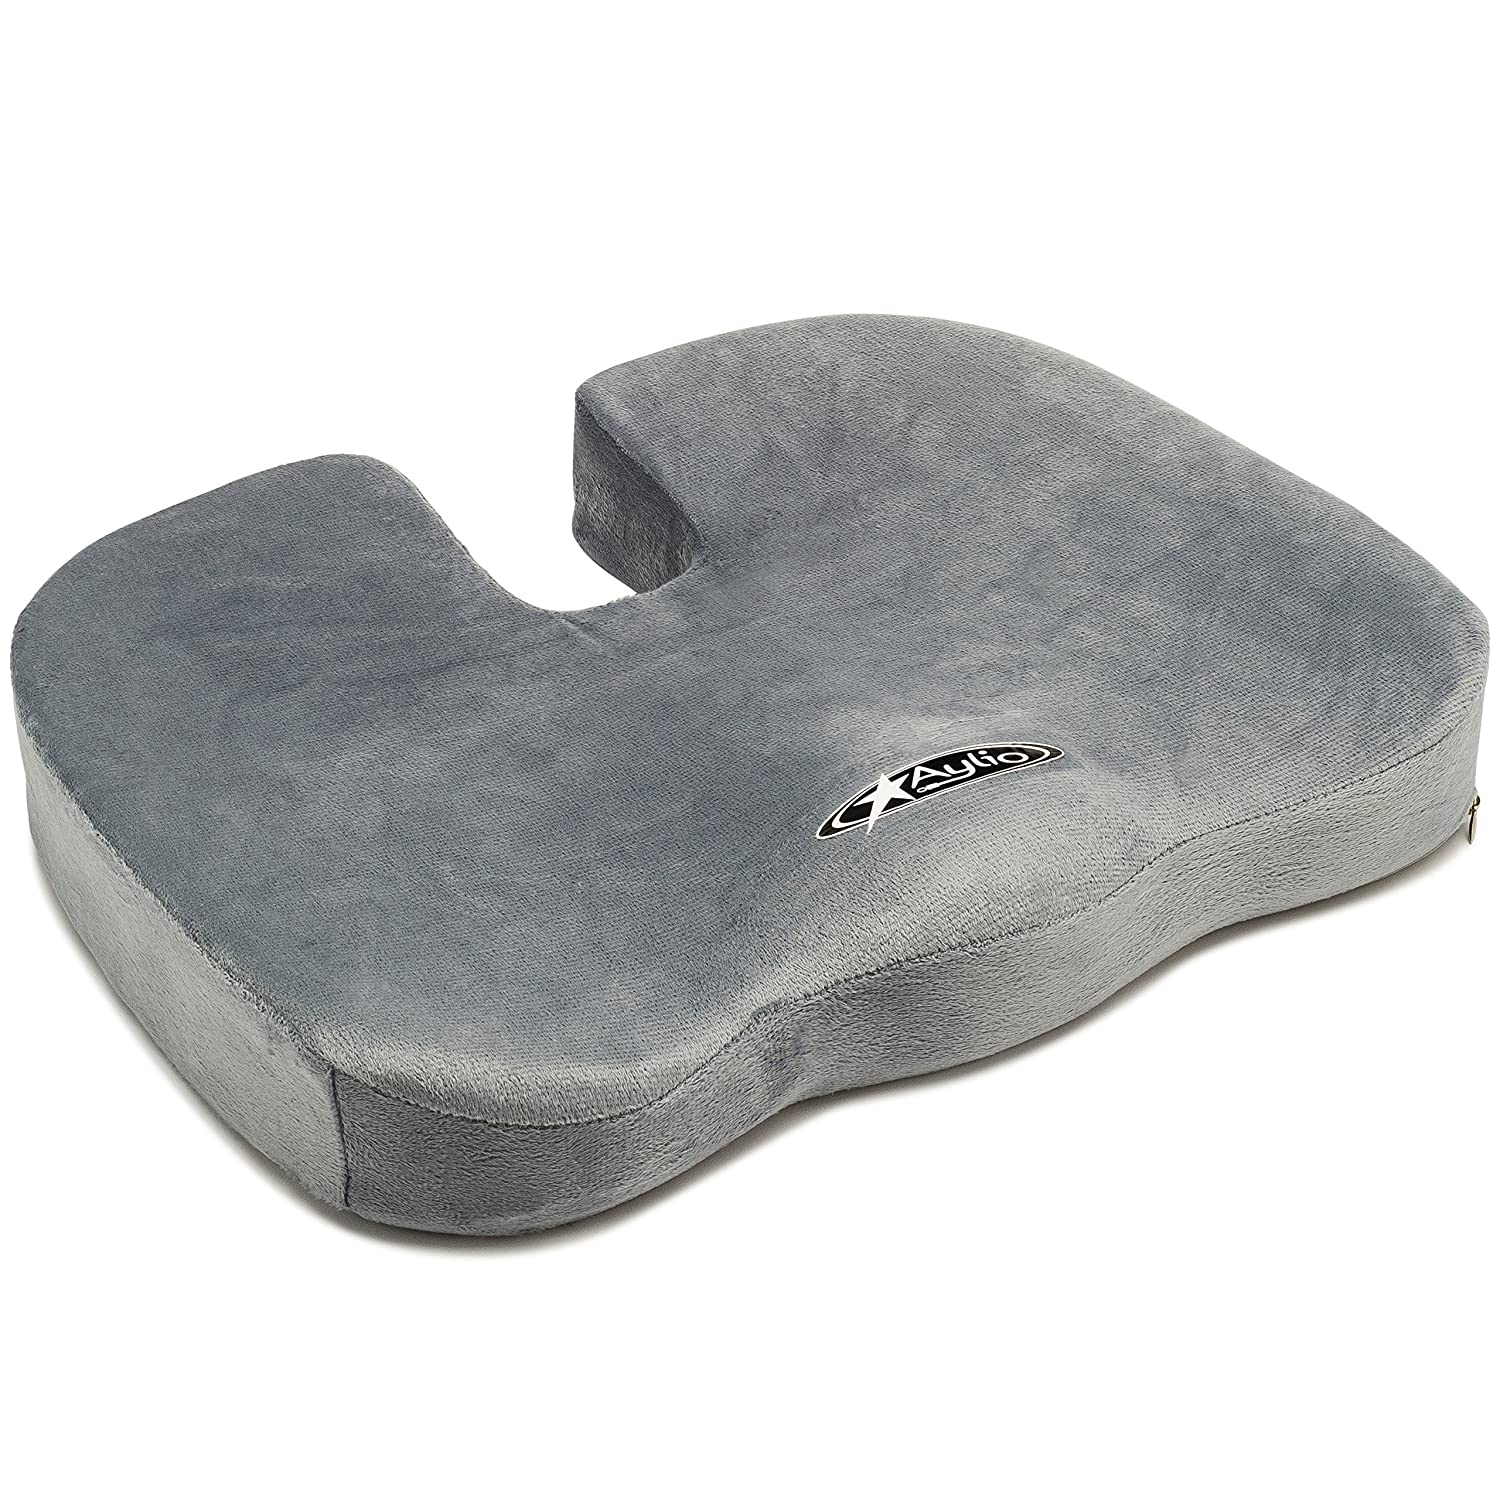 Best Seat Cushion For Office Chairs Airplane Wheelchairs